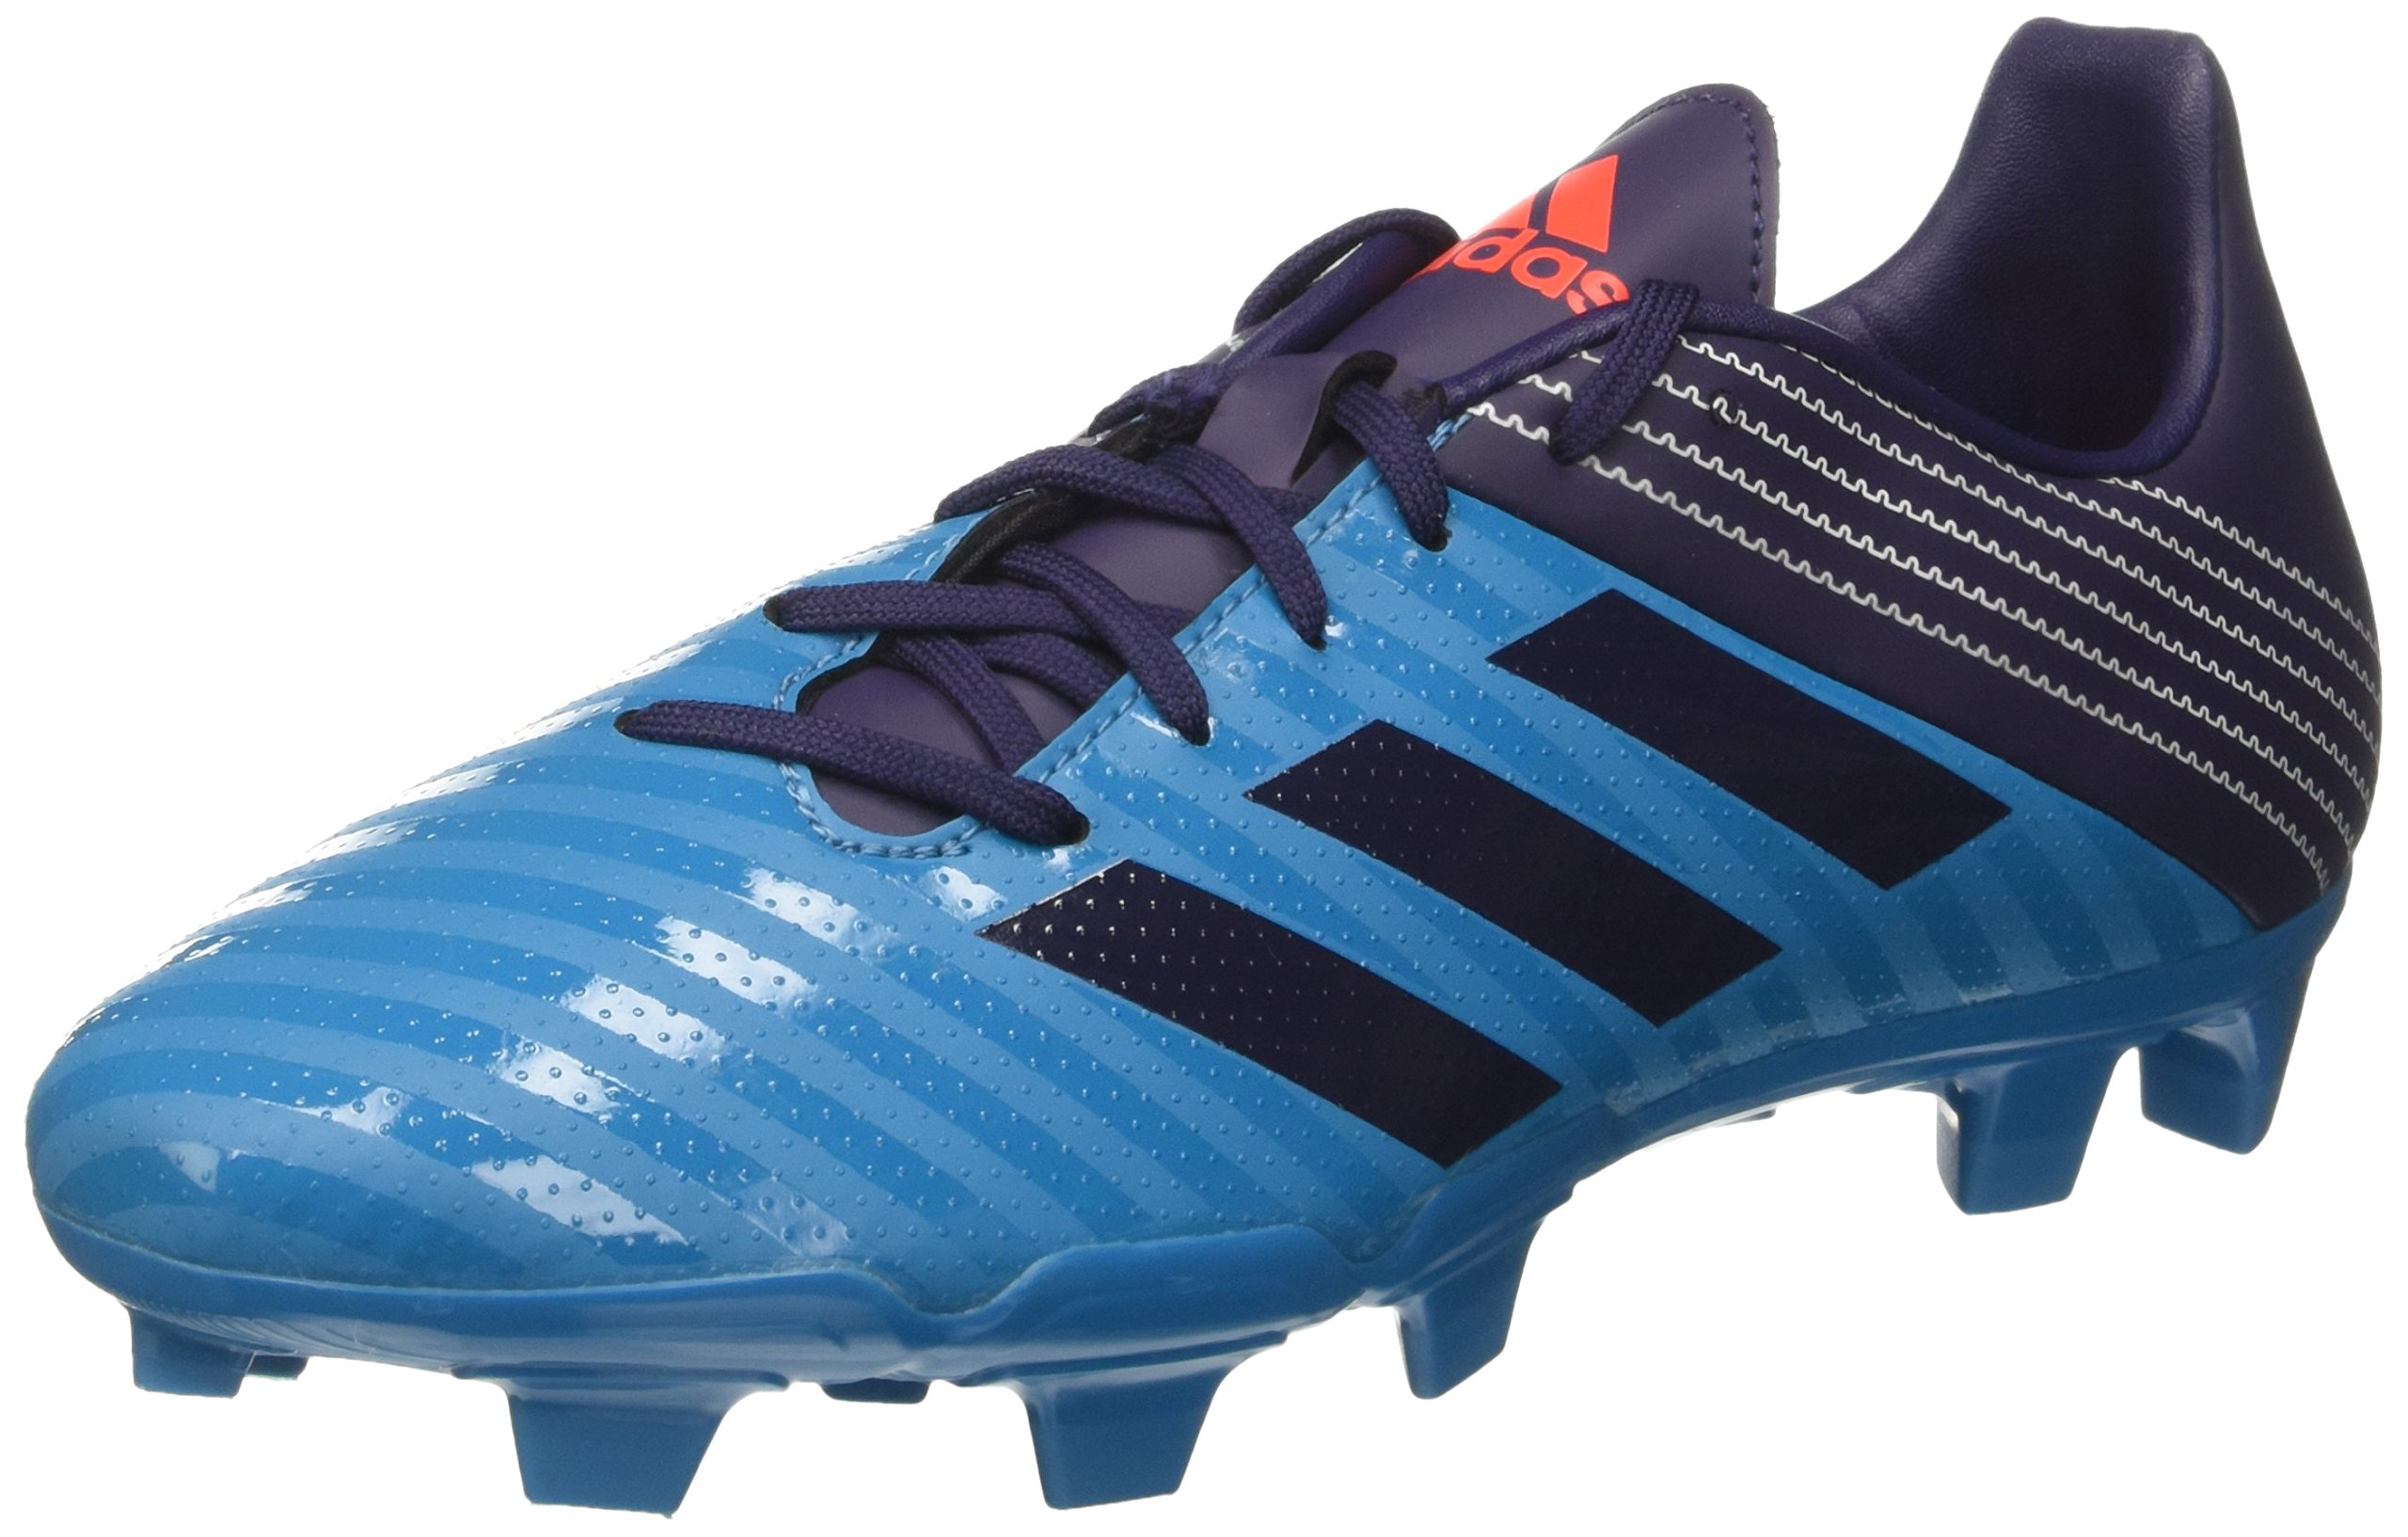 Rugby F17 3 blaze Orange Eu HommeMulticoloremystery De Petrol Malice F17 1 Ink noble Adidas FgChaussures S1341 54jqRA3L